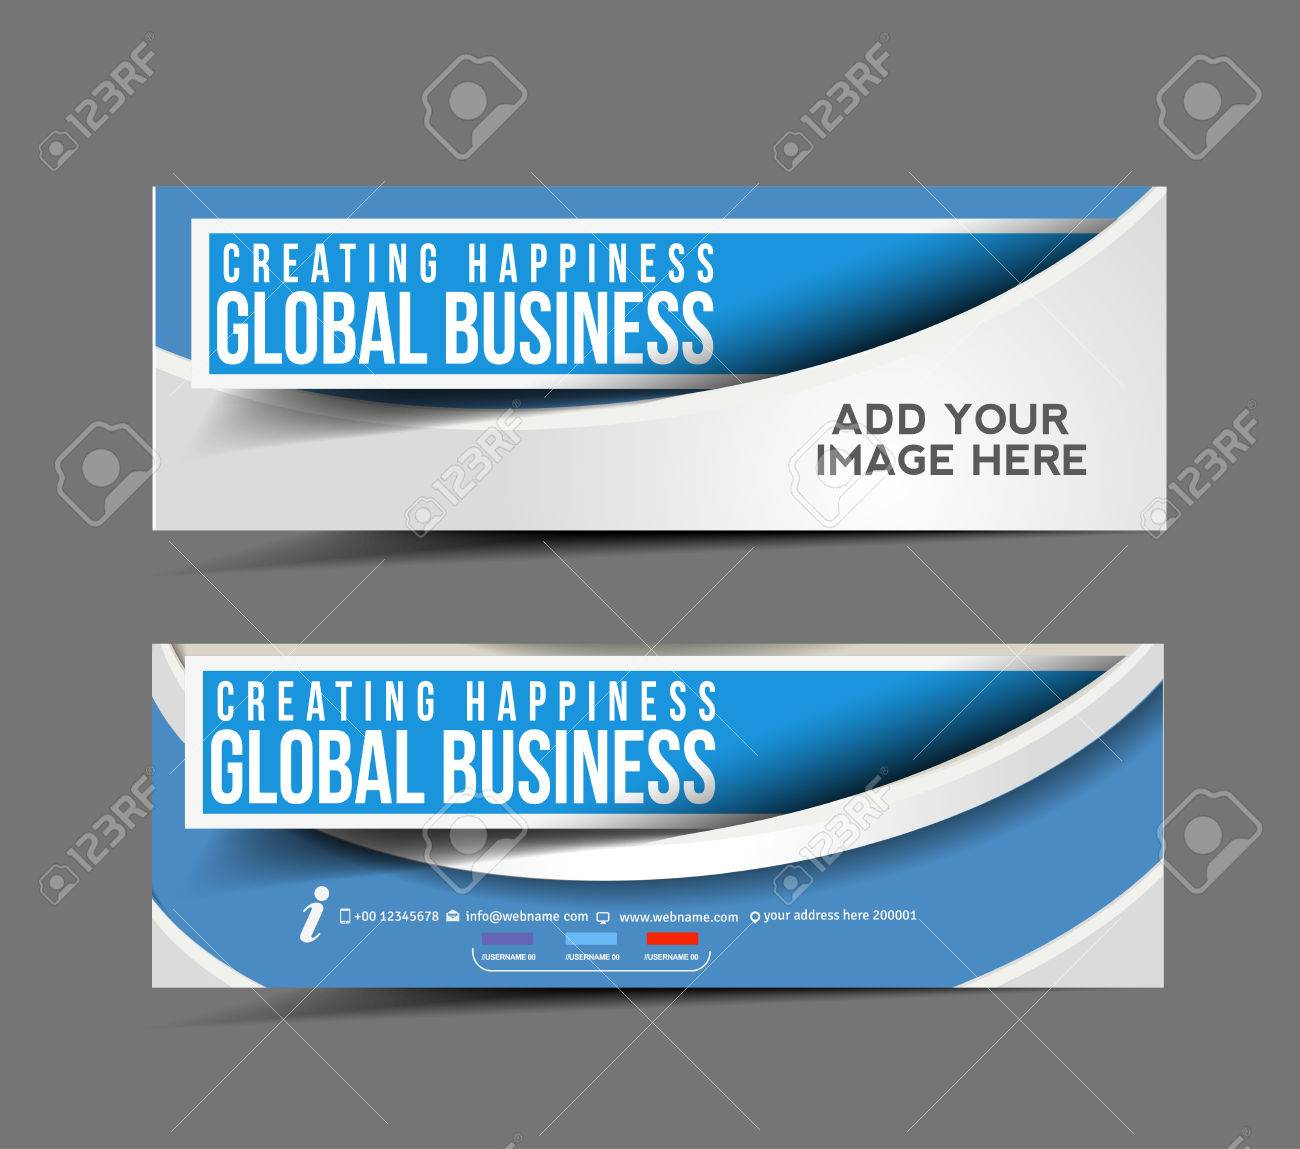 Global Business Web Banner, Header Layout Template. Stock Vector - 26974850